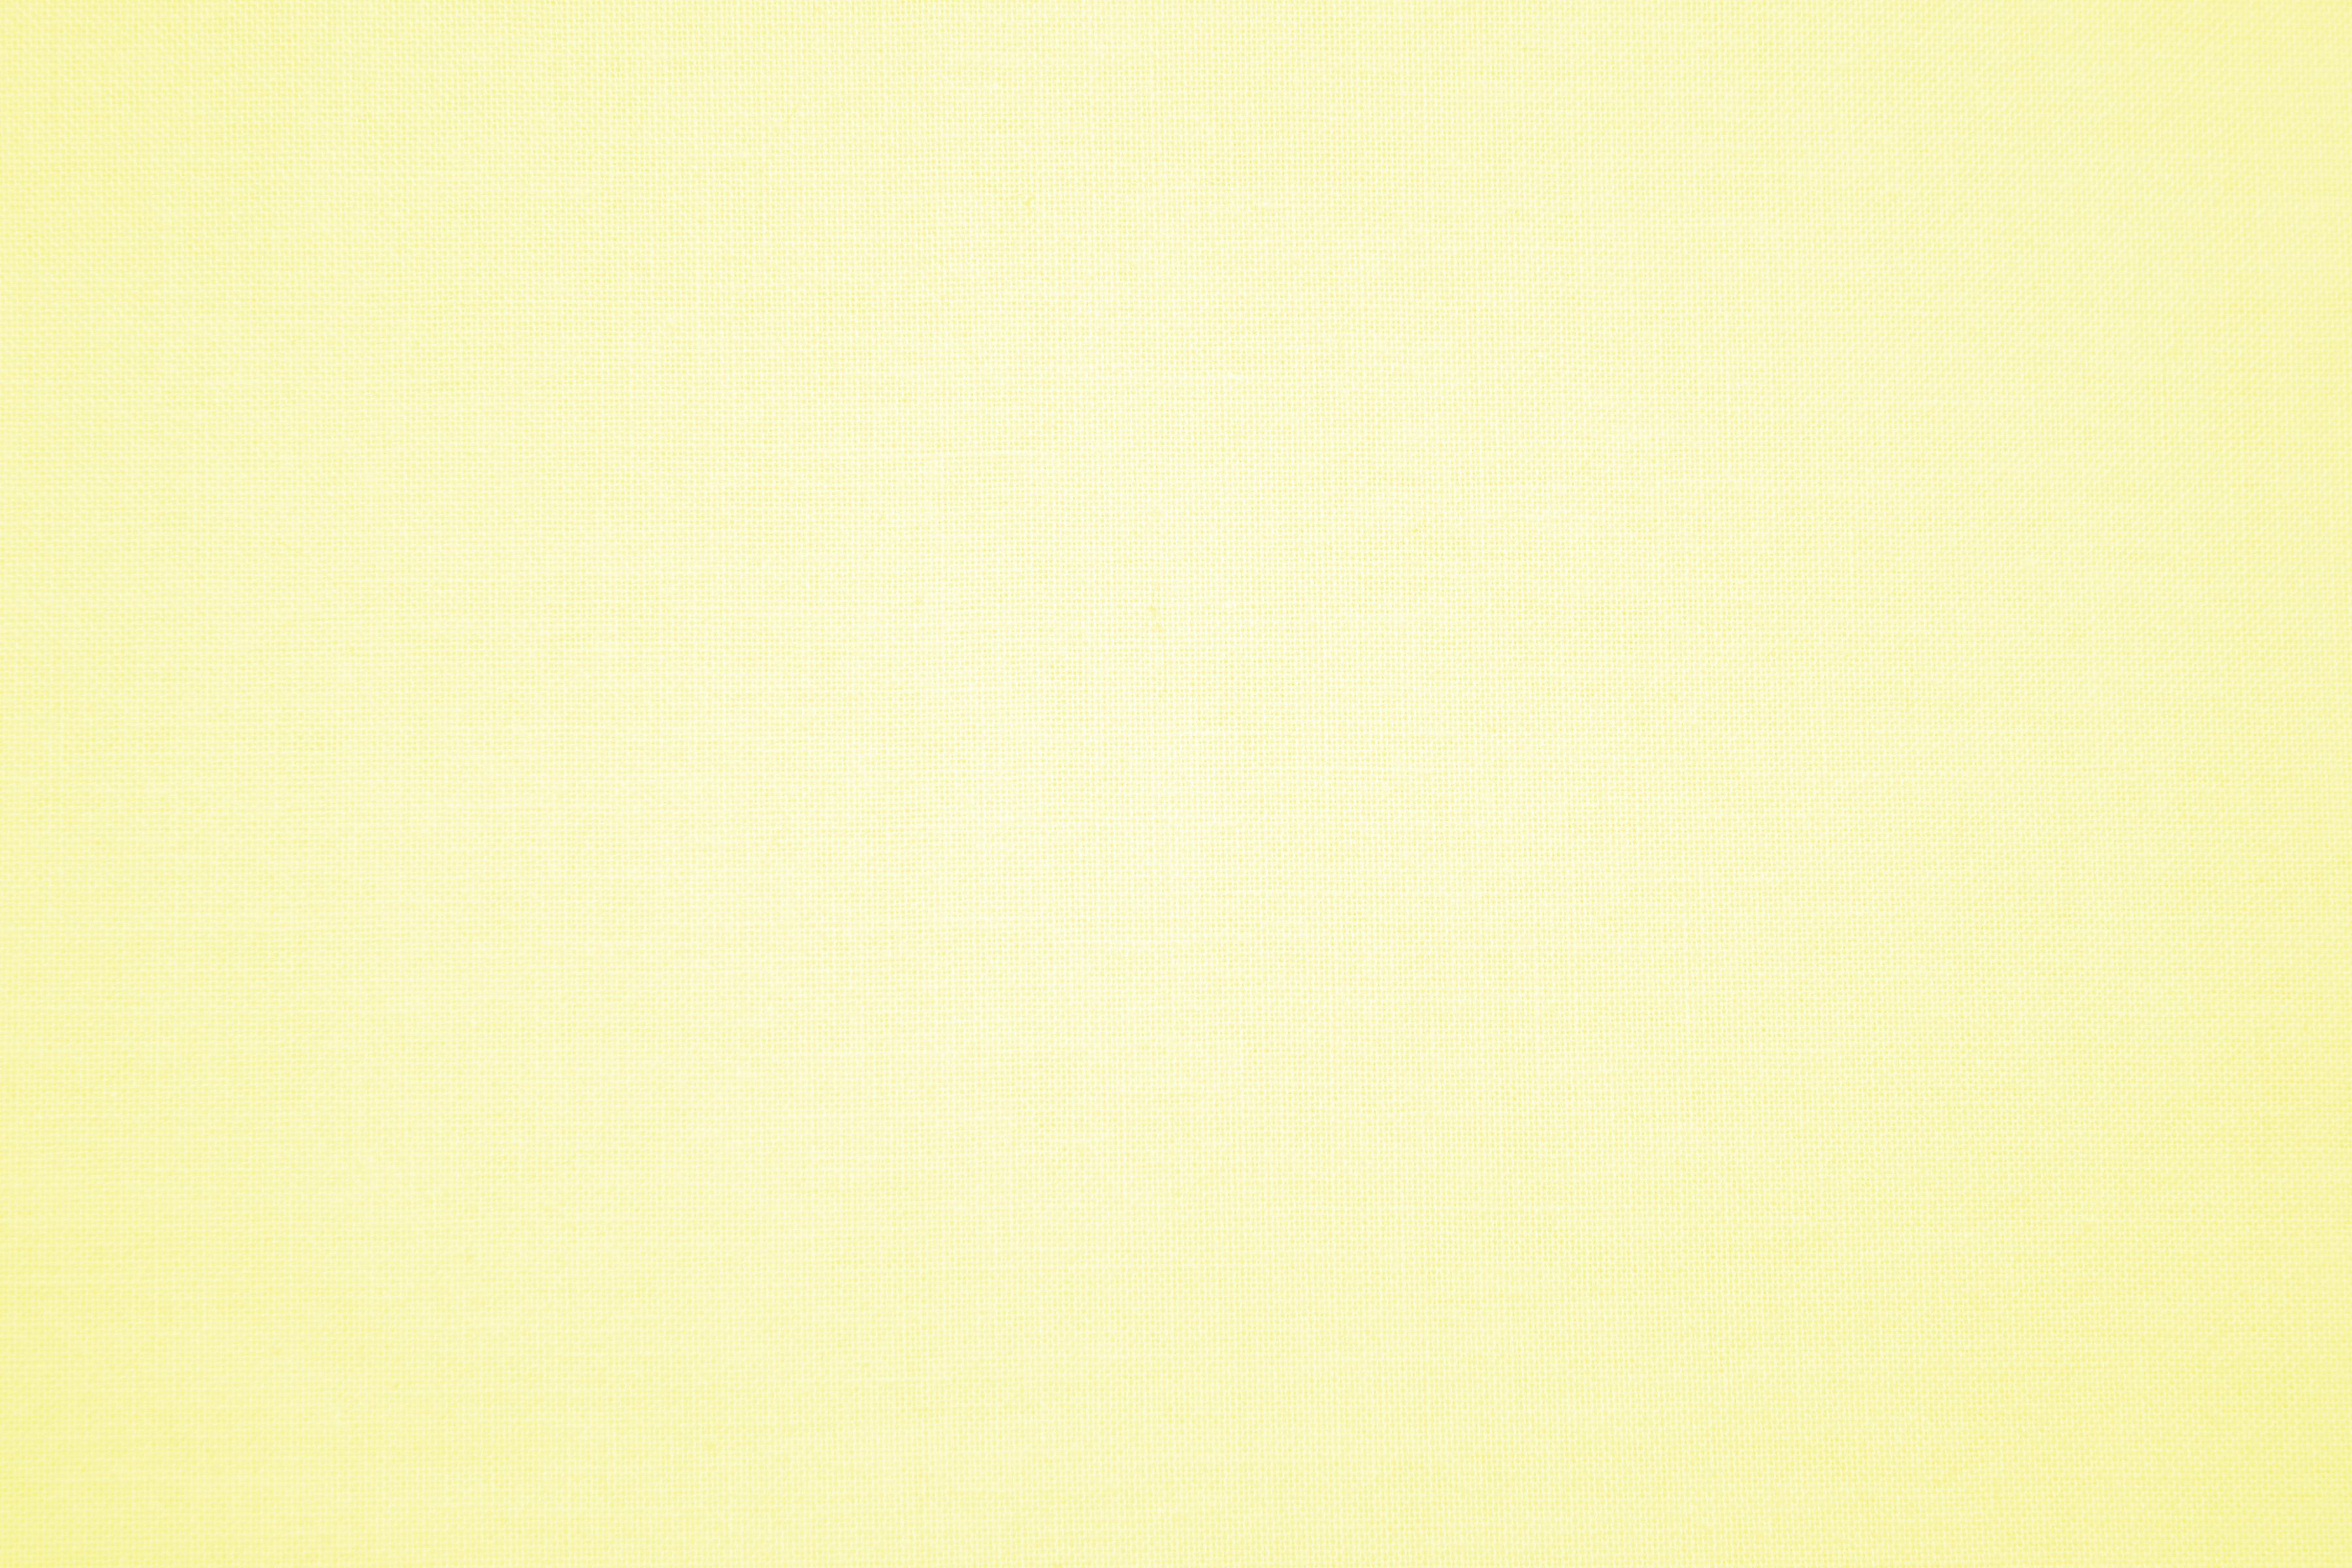 Chocolate Blog Backgrounds Pastel Yellow Canvas Fabric